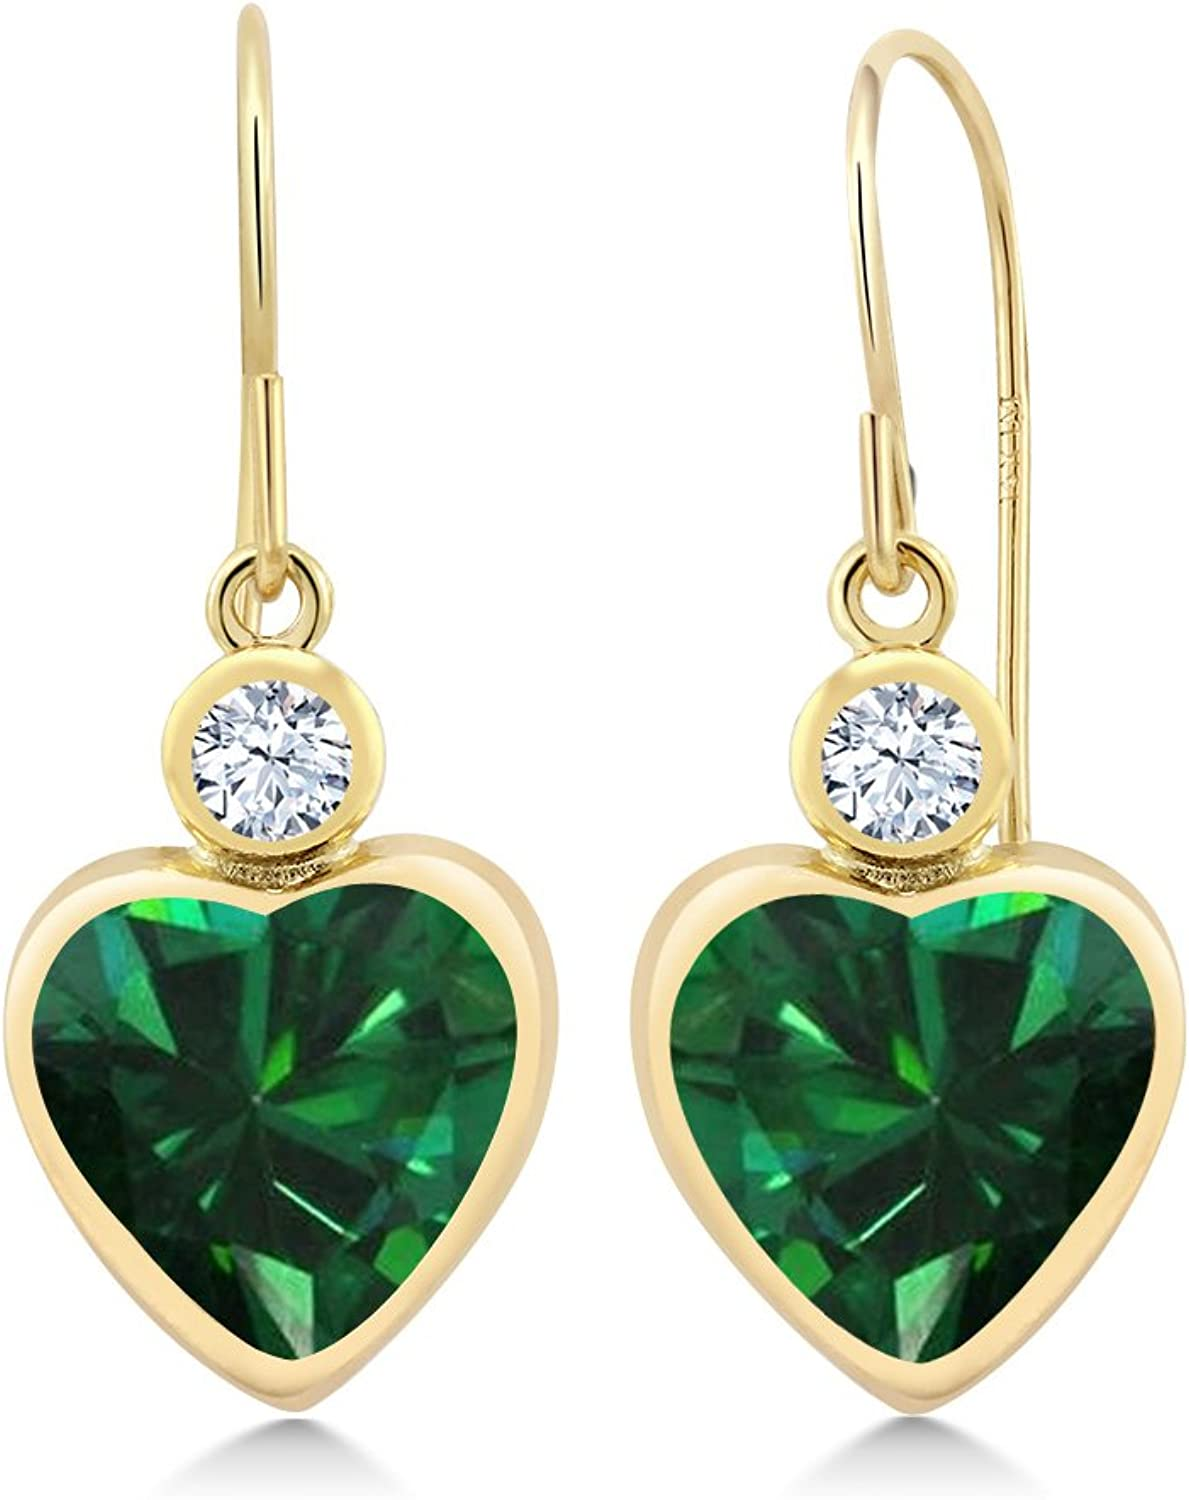 Gem Stone King 3.26 Ct Green Simulated Emerald White Created Sapphire 14K Yellow gold Earrings